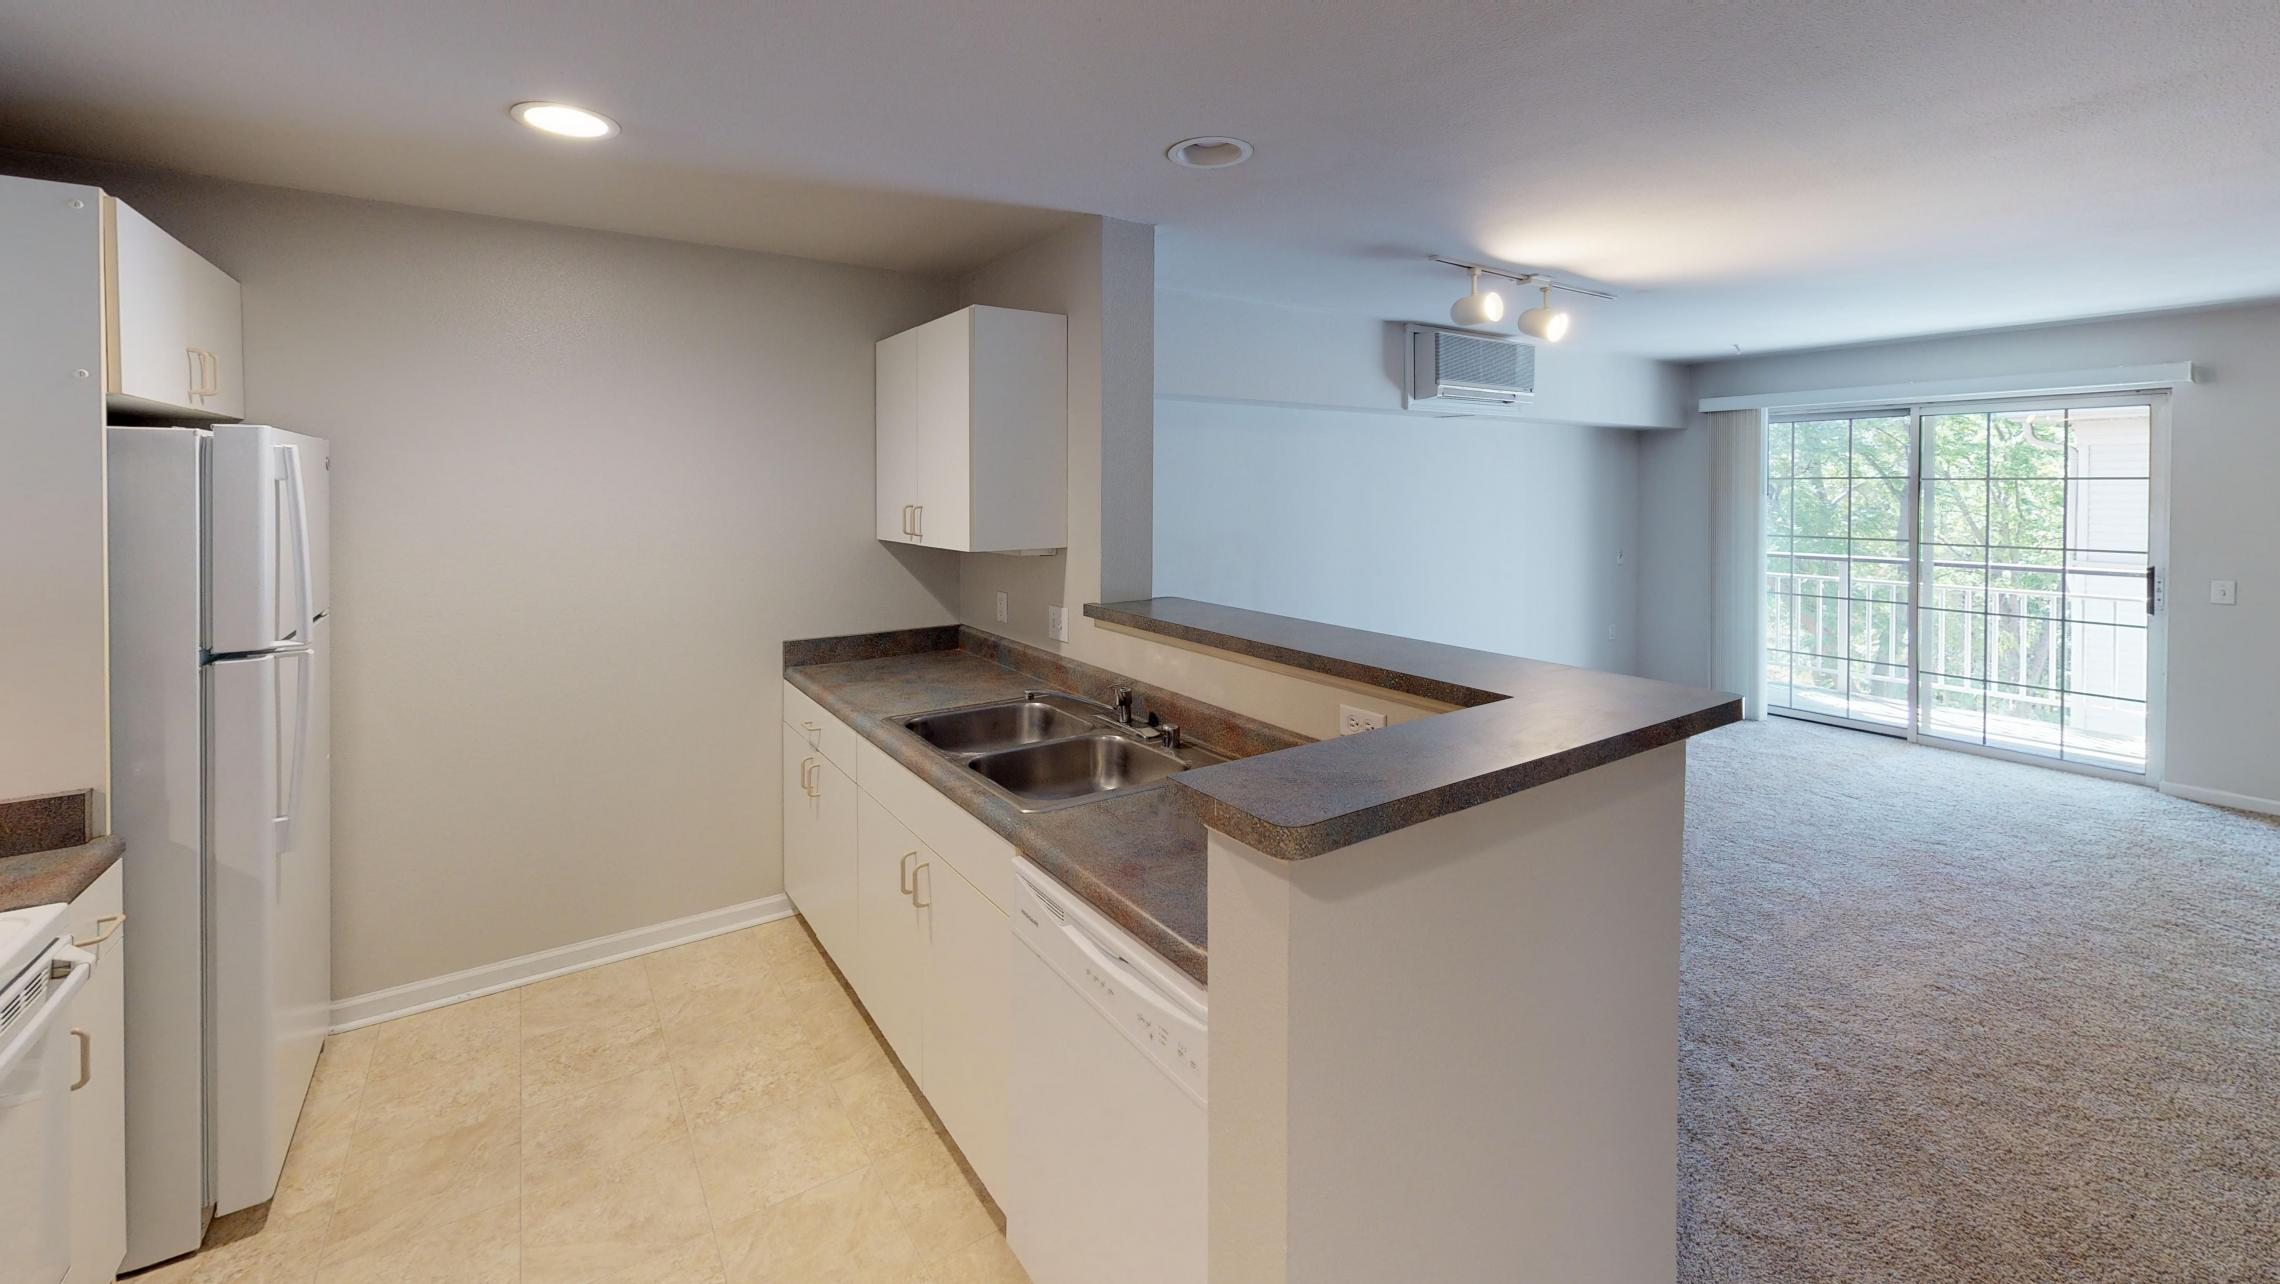 Wilson-Bay-Apartment-309-Studio-Downtown-Madison-Kitchen-Living-Balcony-Patio.jpg